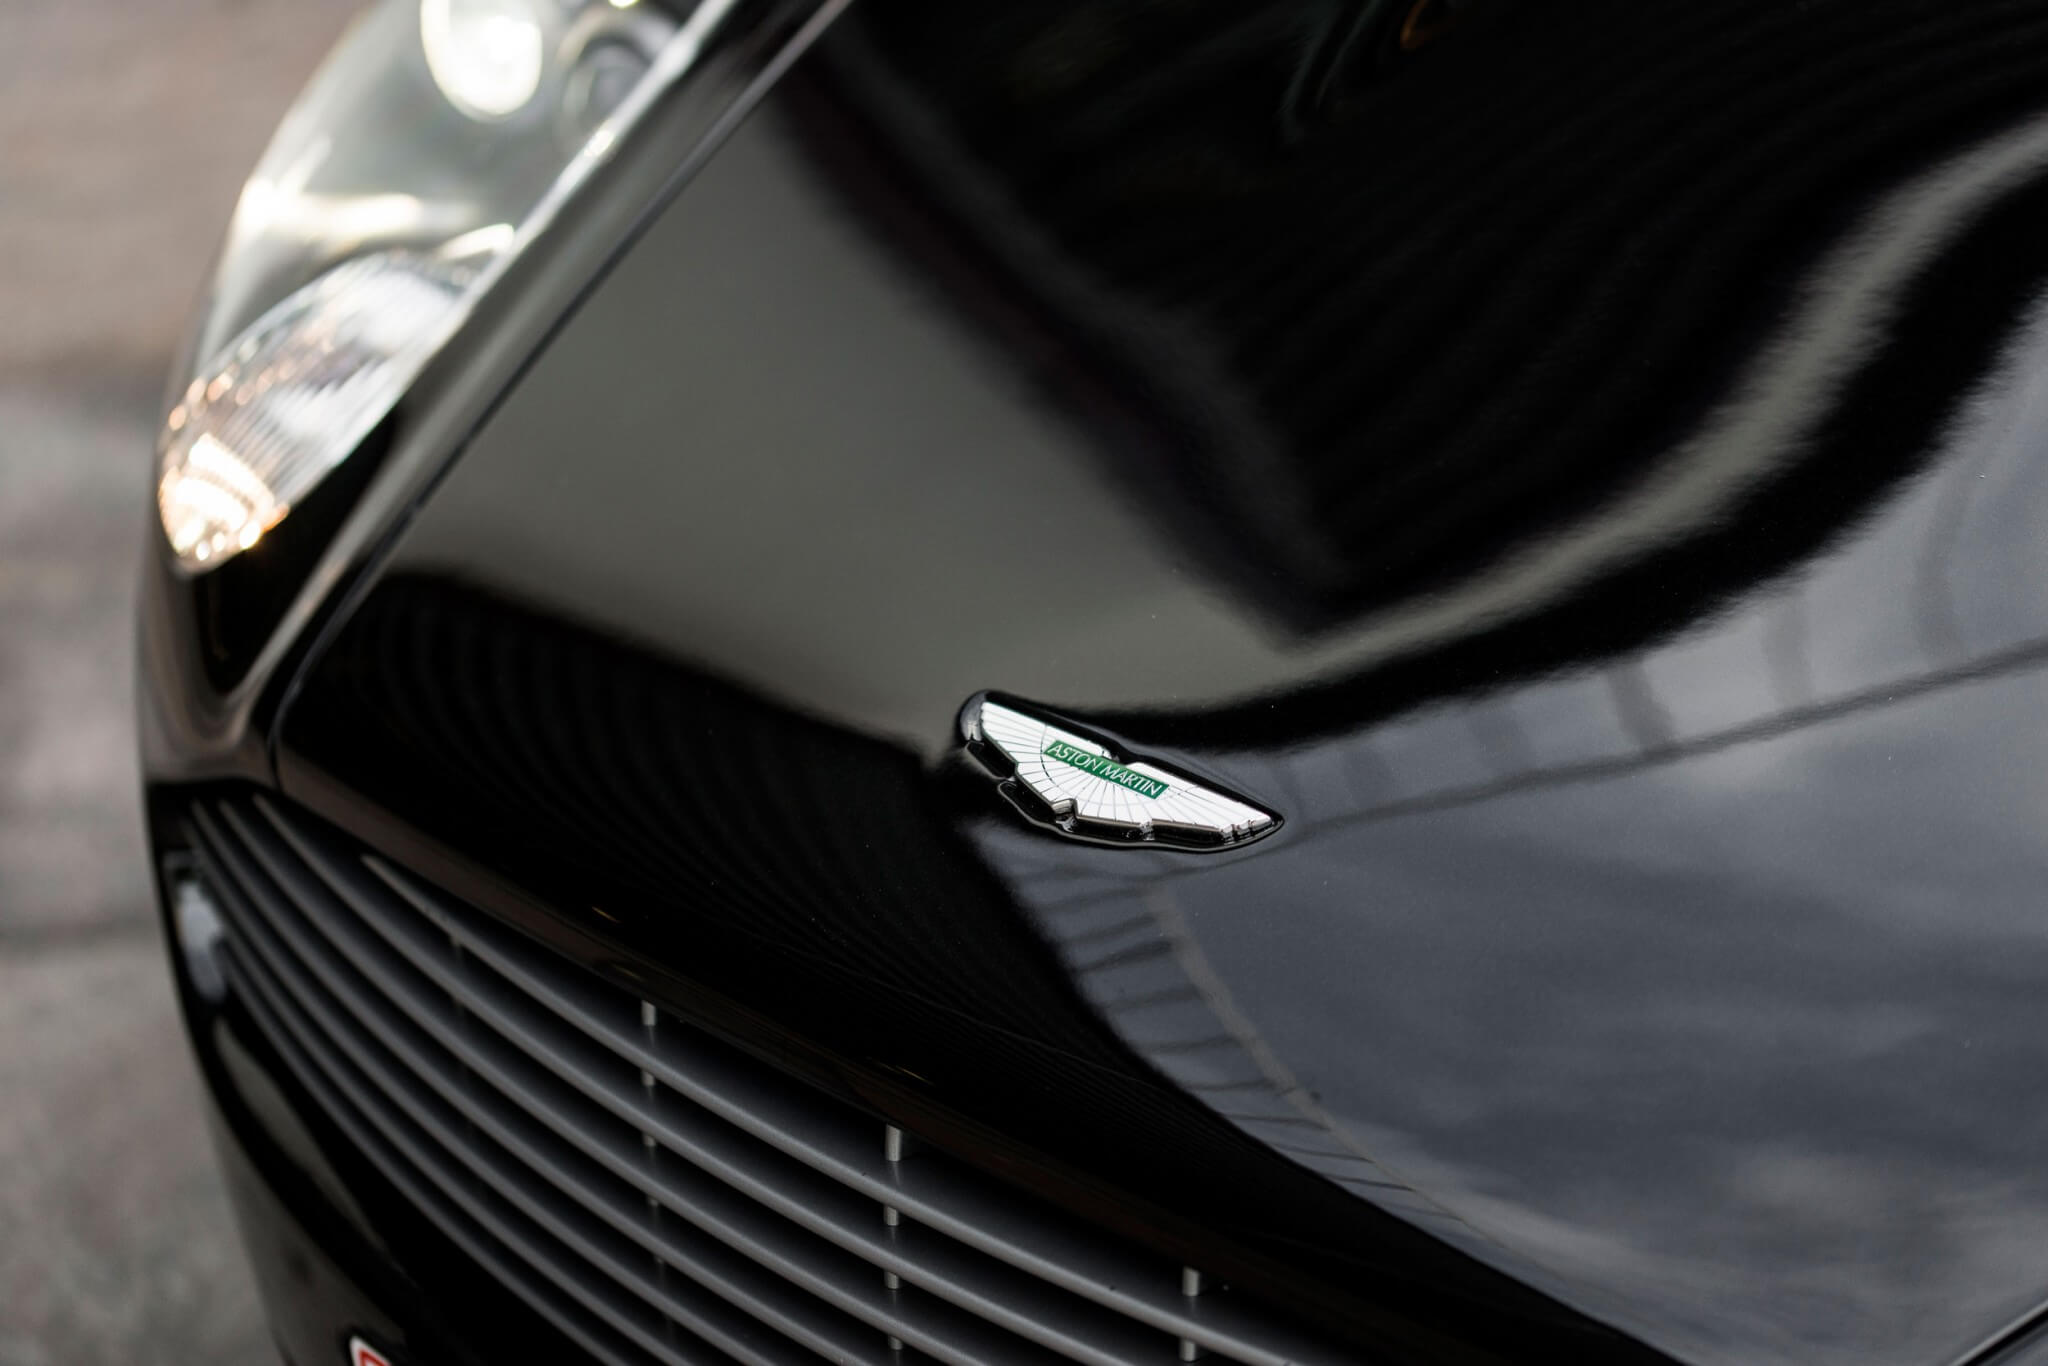 Black Aston Martin DB9